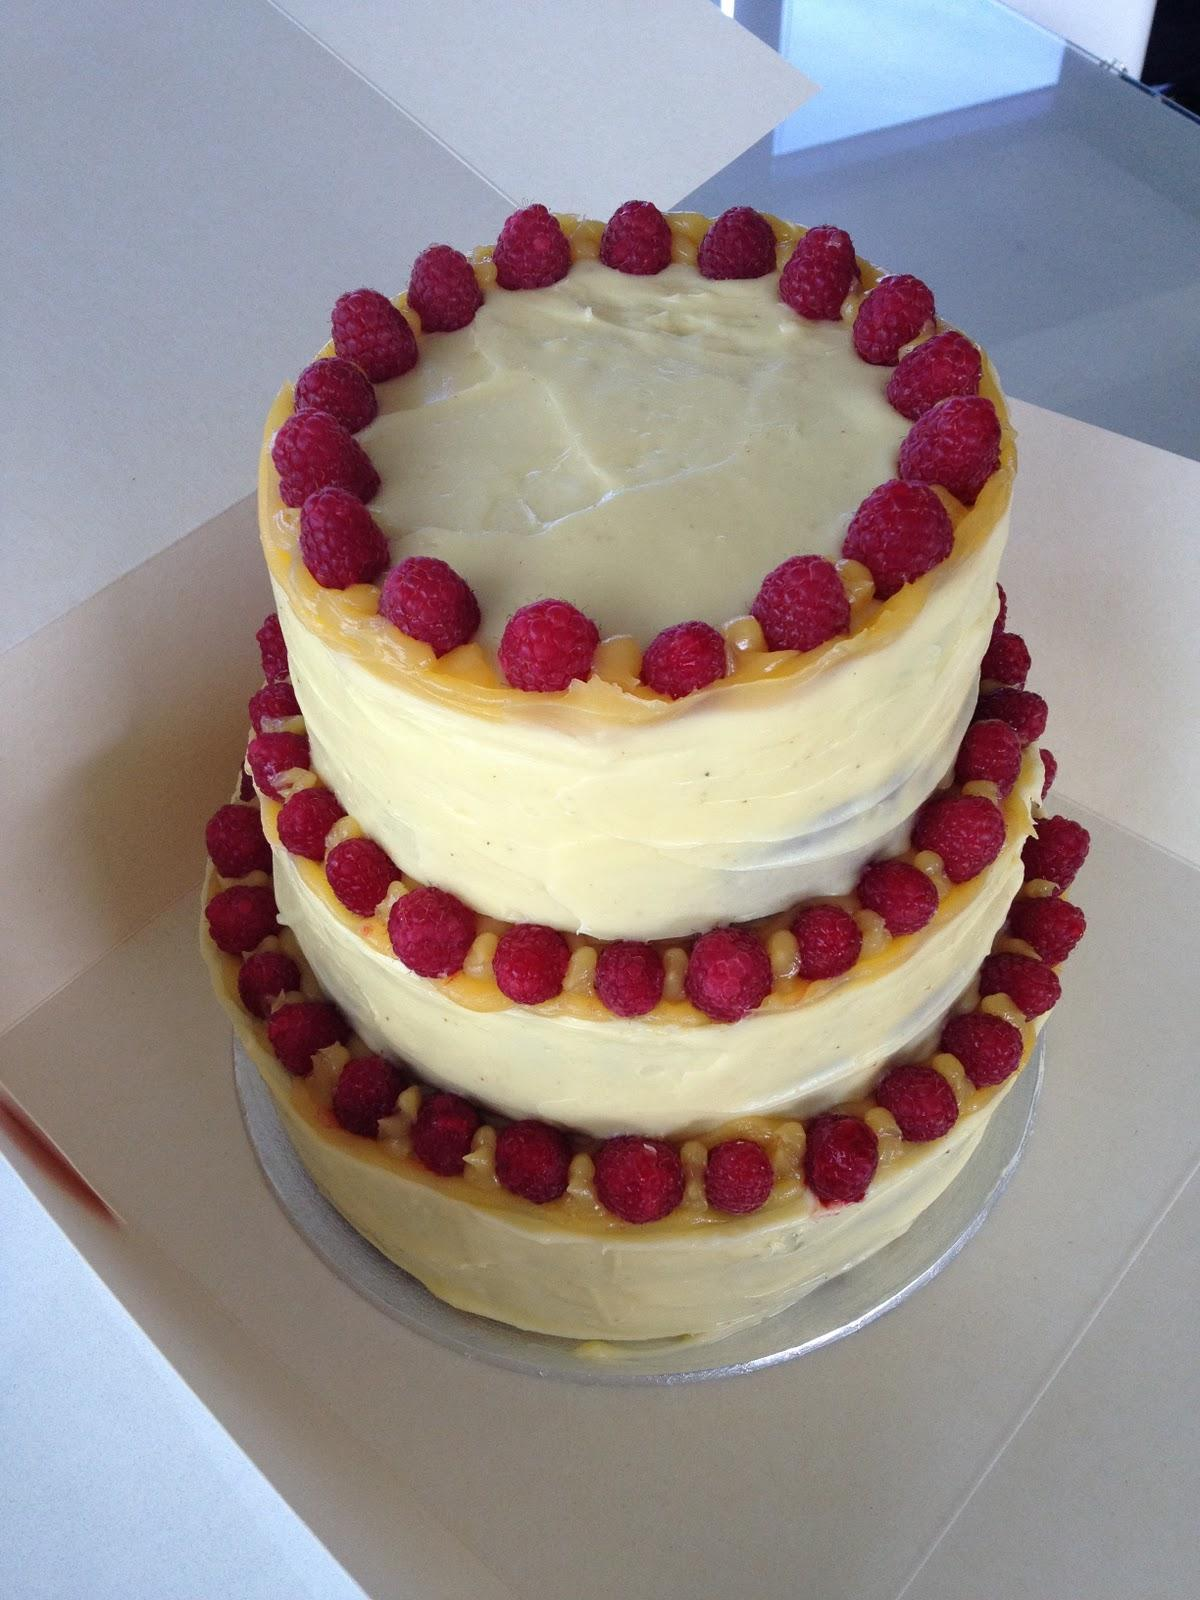 Wedding Cakes. 3 tiered lemon